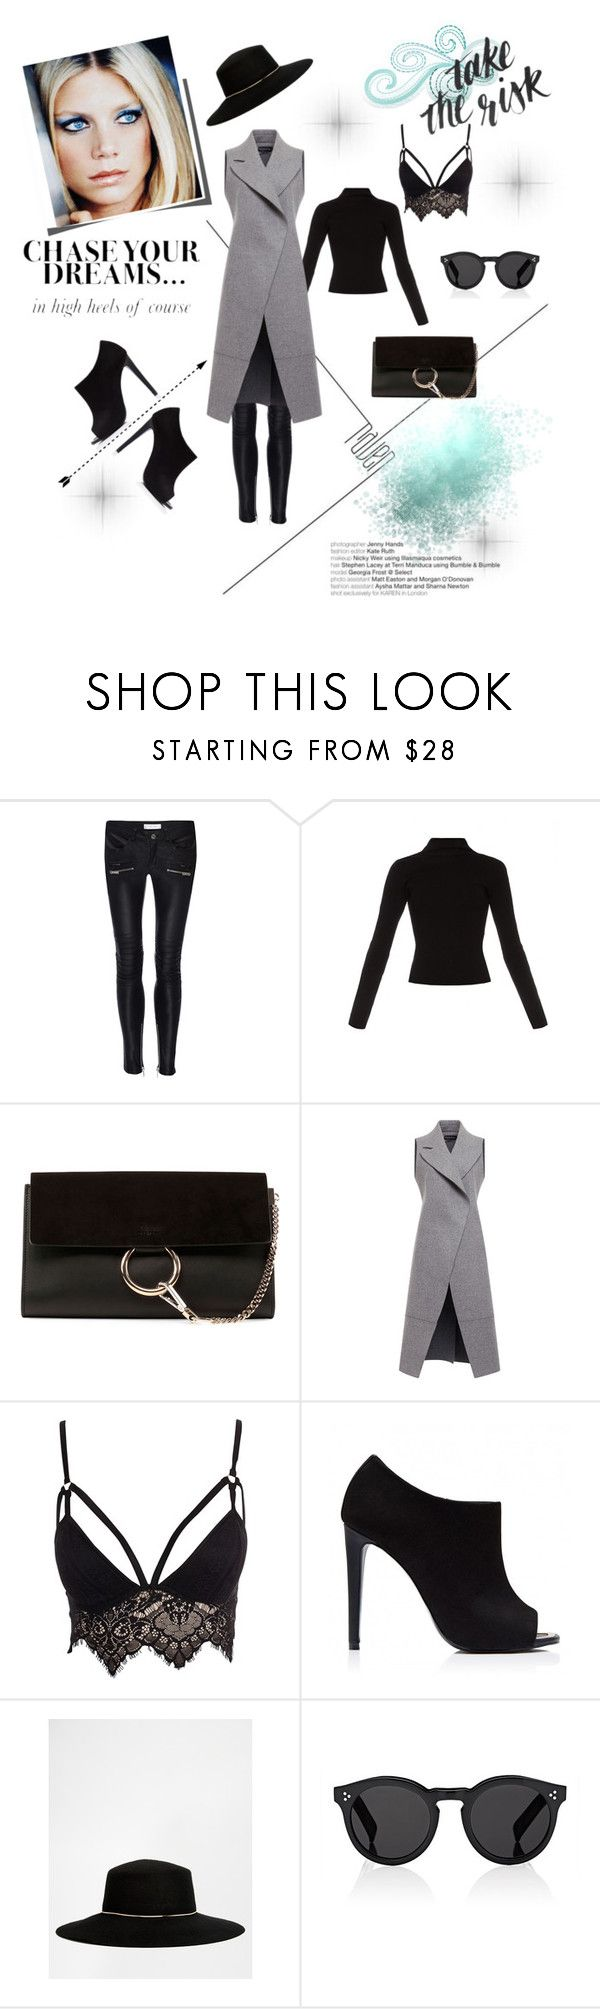 """Peta Wilson style!"" by ieva-galvina ❤ liked on Polyvore featuring Haider Ackermann, Chloé, David Koma, Club L, Forever New, River Island, Illesteva and GetTheLook"